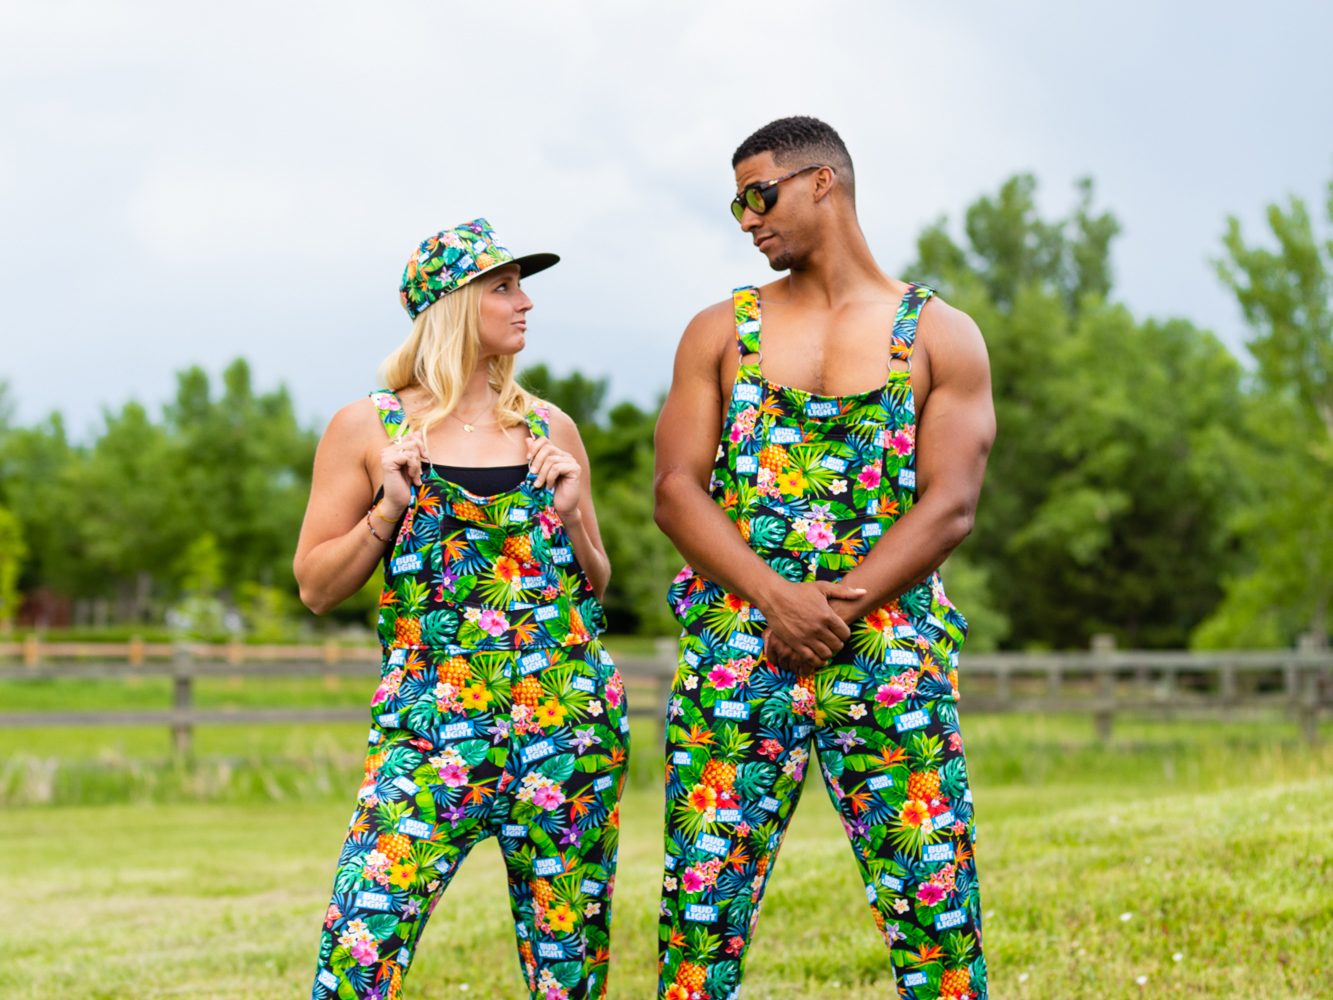 Bud Light's 'Pajameralls' Are Sure to Turn Heads At Your Next Cookout